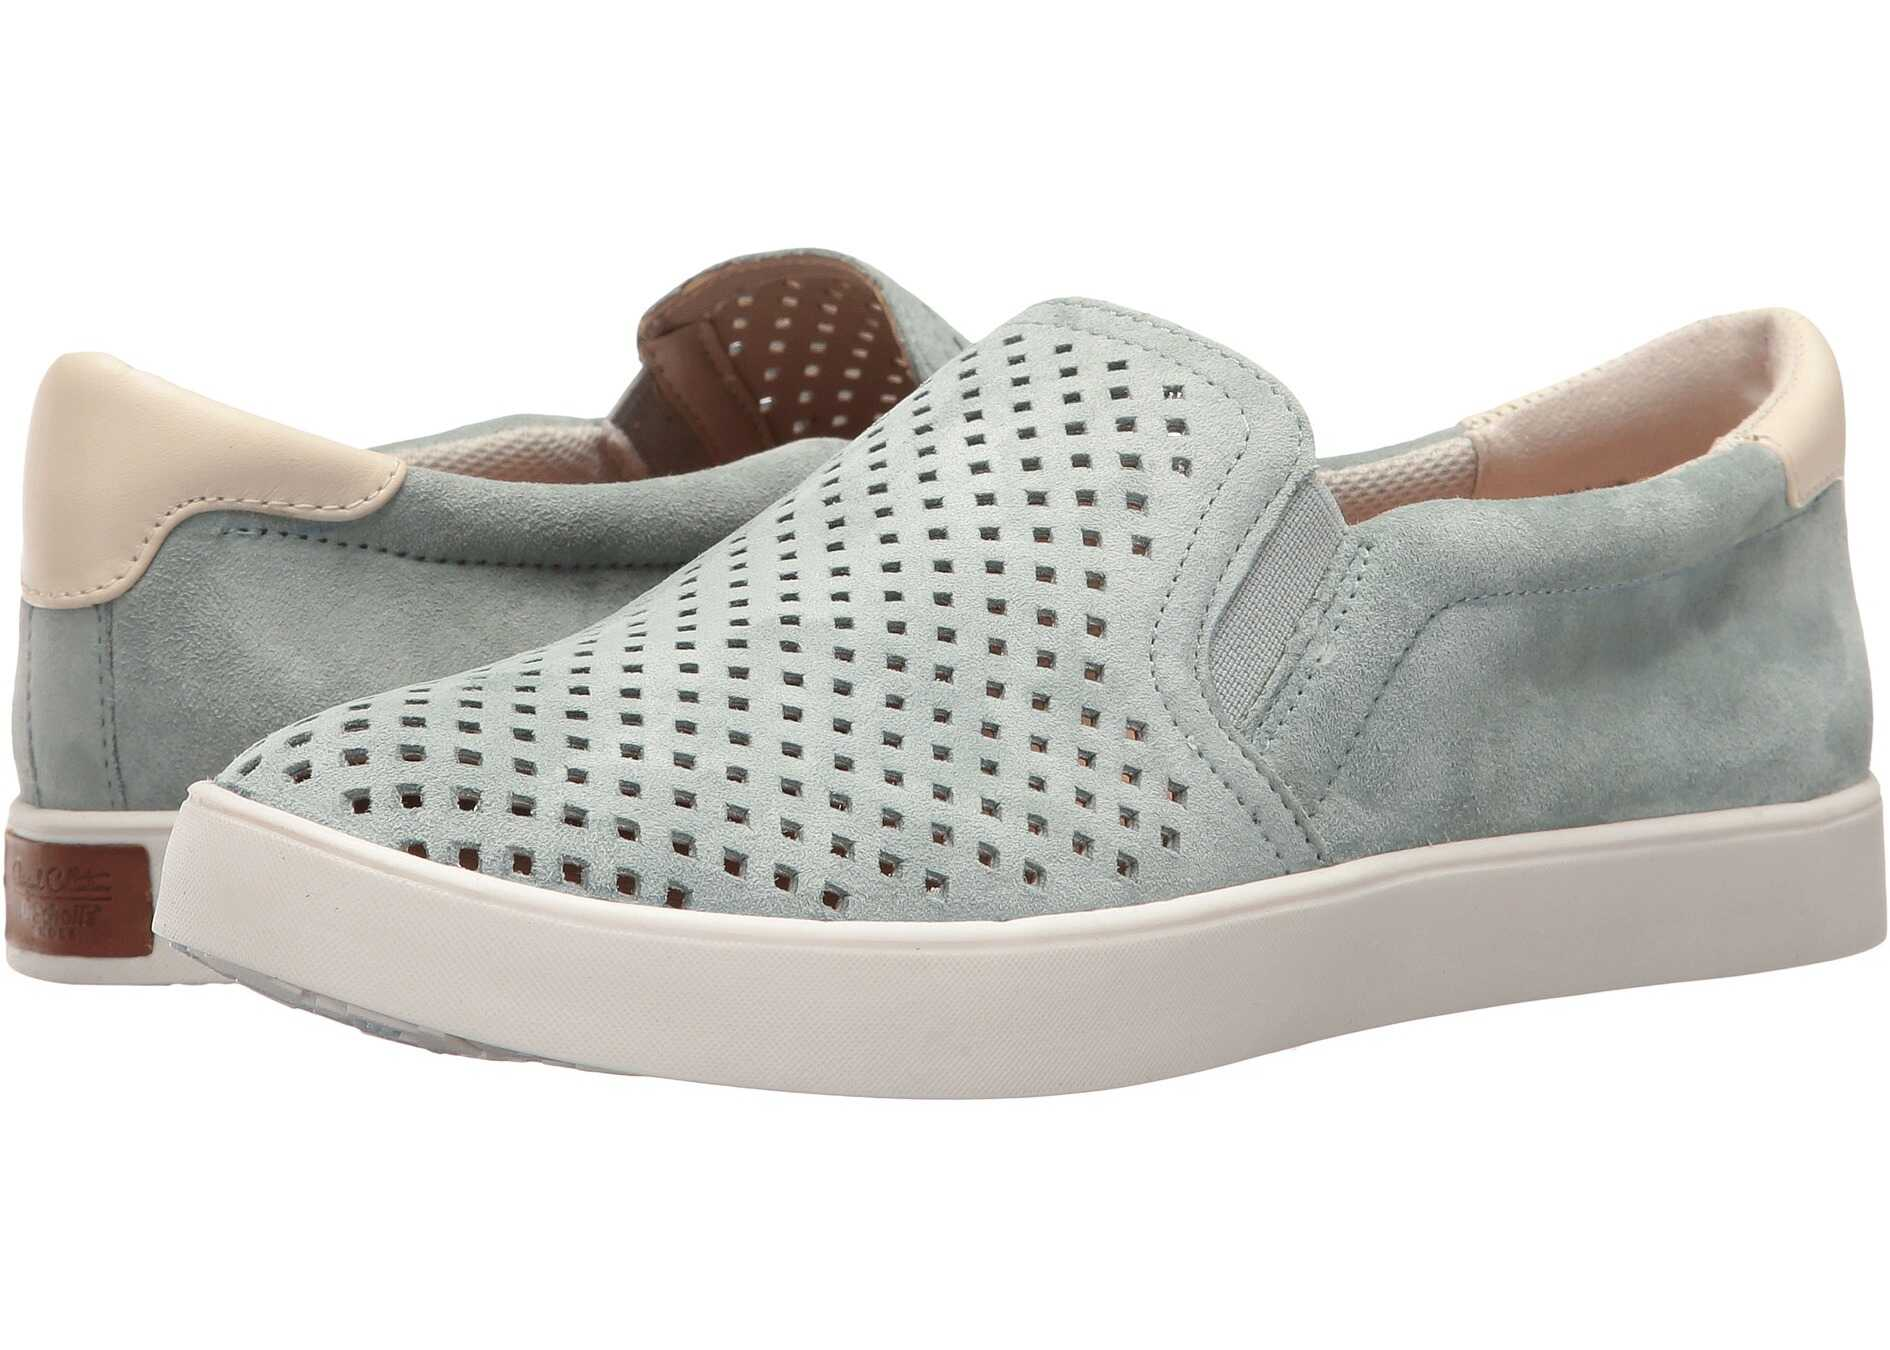 Dr. Scholls Scout - Original Collection Eggshell Blue Suede Perf